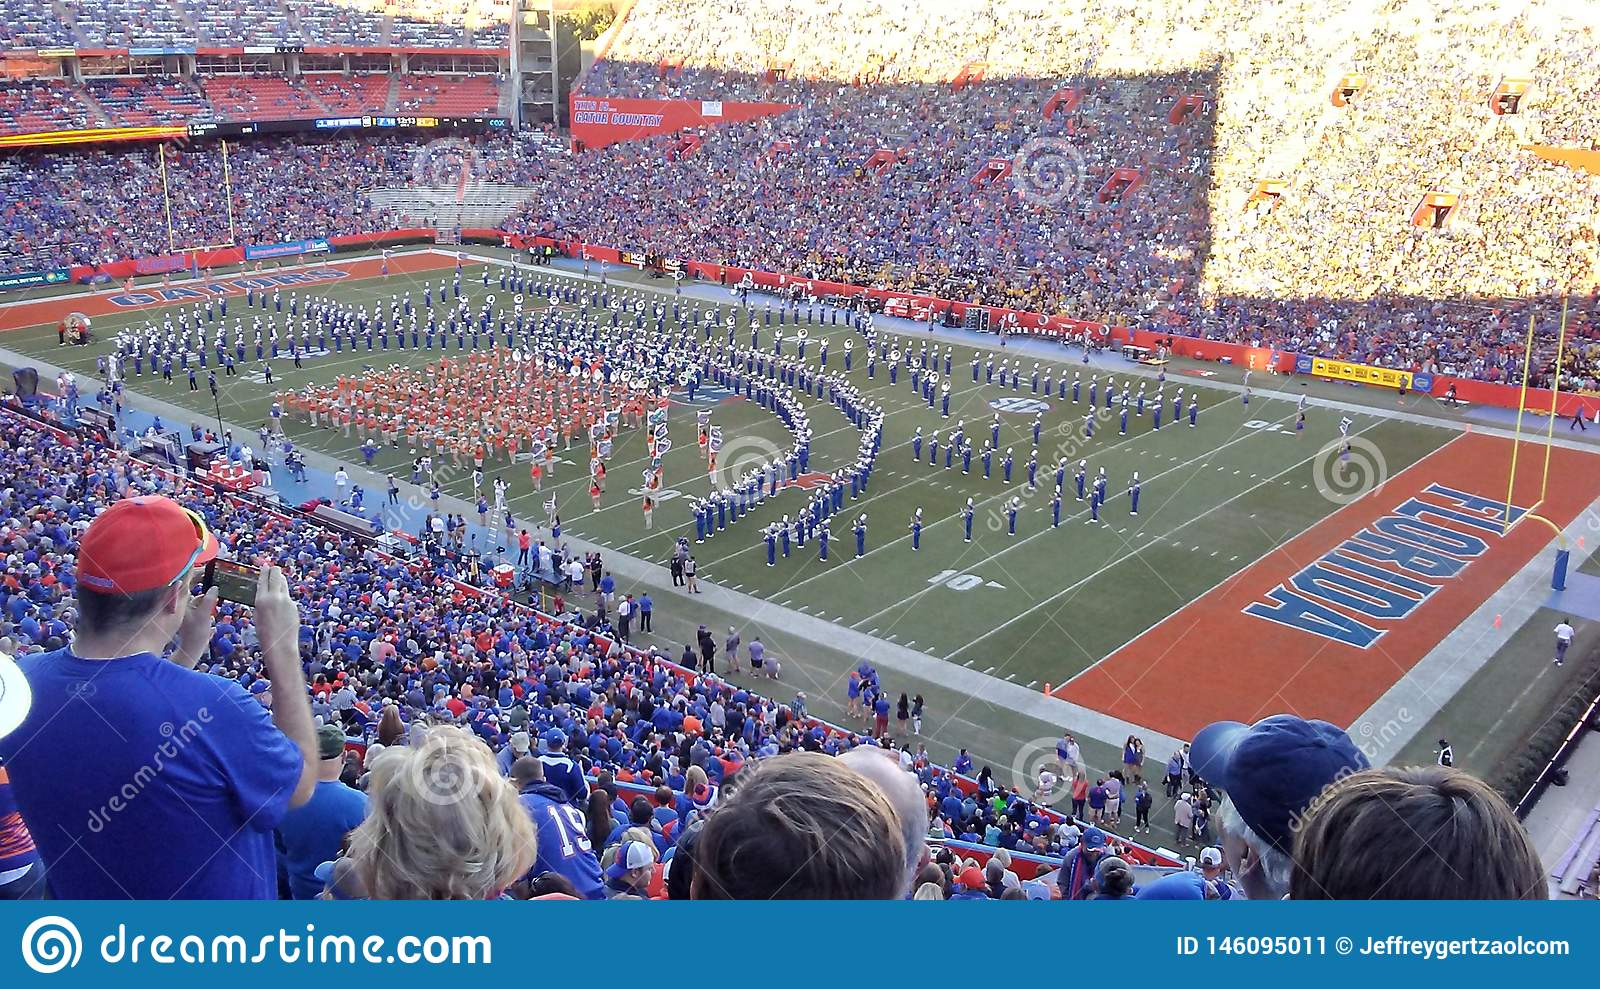 Florida Gators Football Marching Band on the field